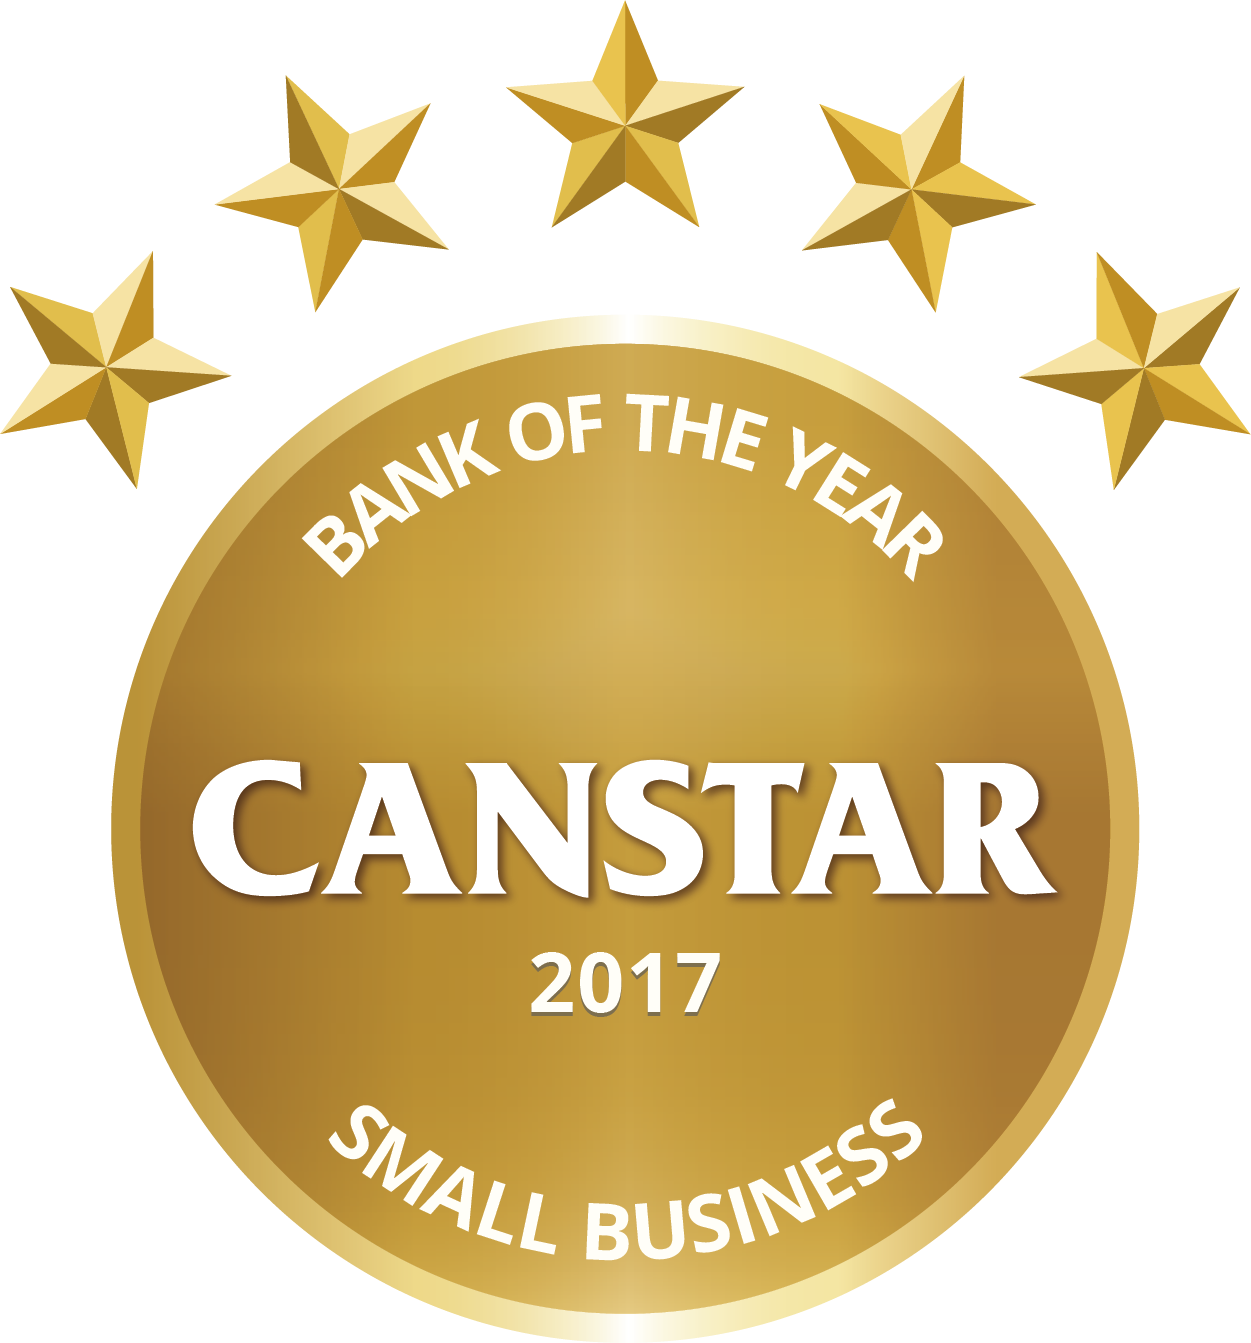 CANSTAR-2017-Bank-of-the-Year-Small-Business